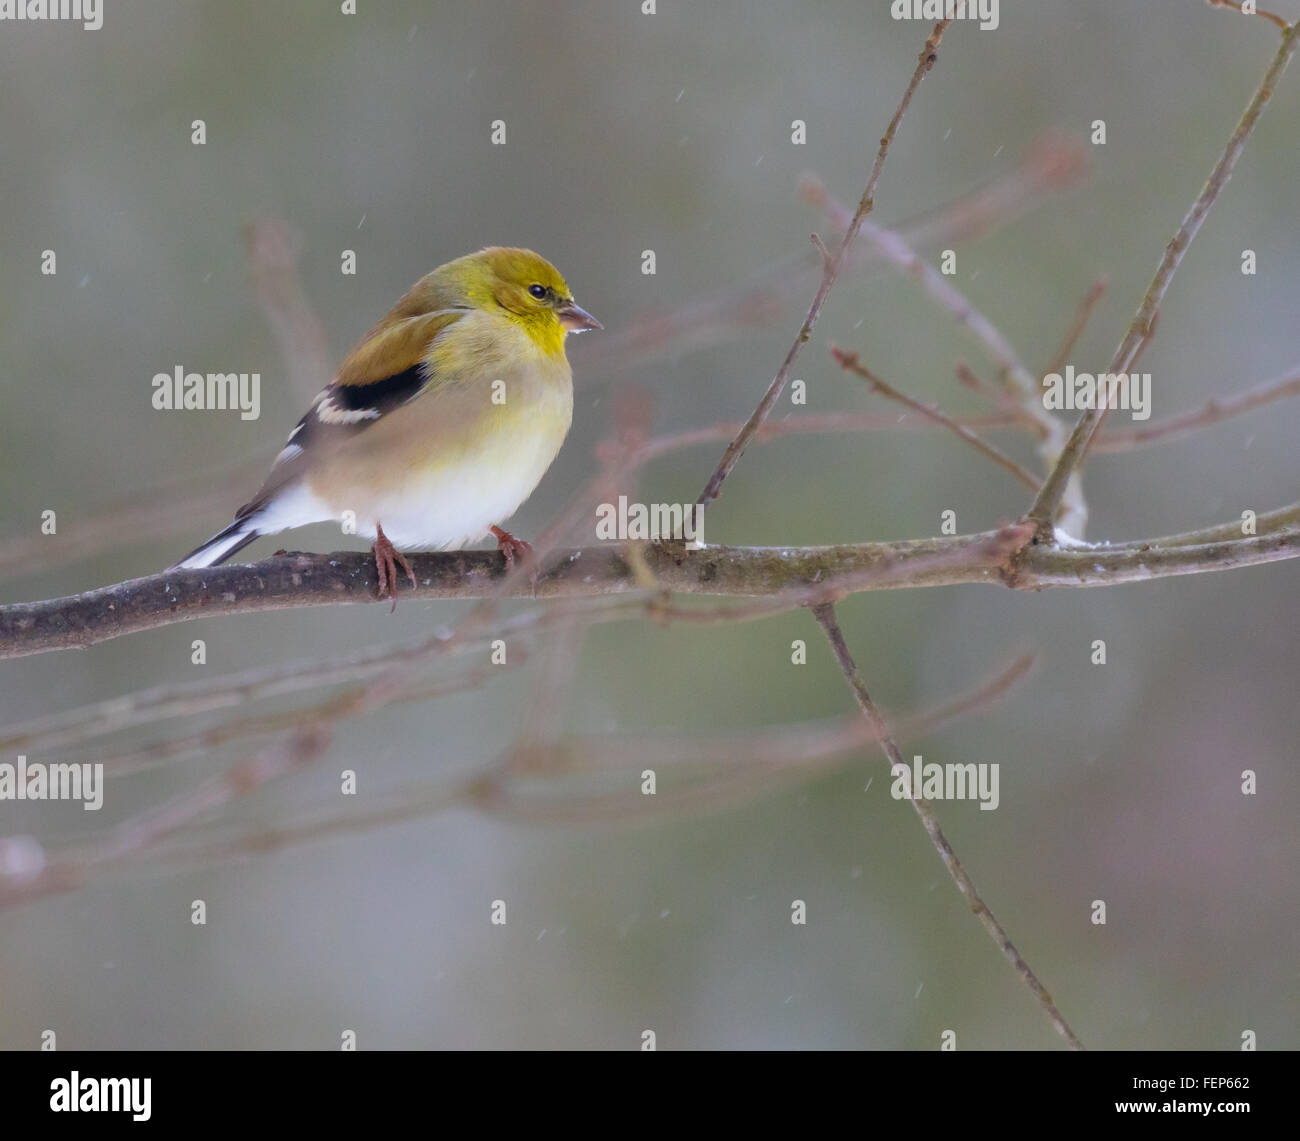 An American Goldfinch (Spinus tristis) perched on a branch during a snow storm - Stock Image